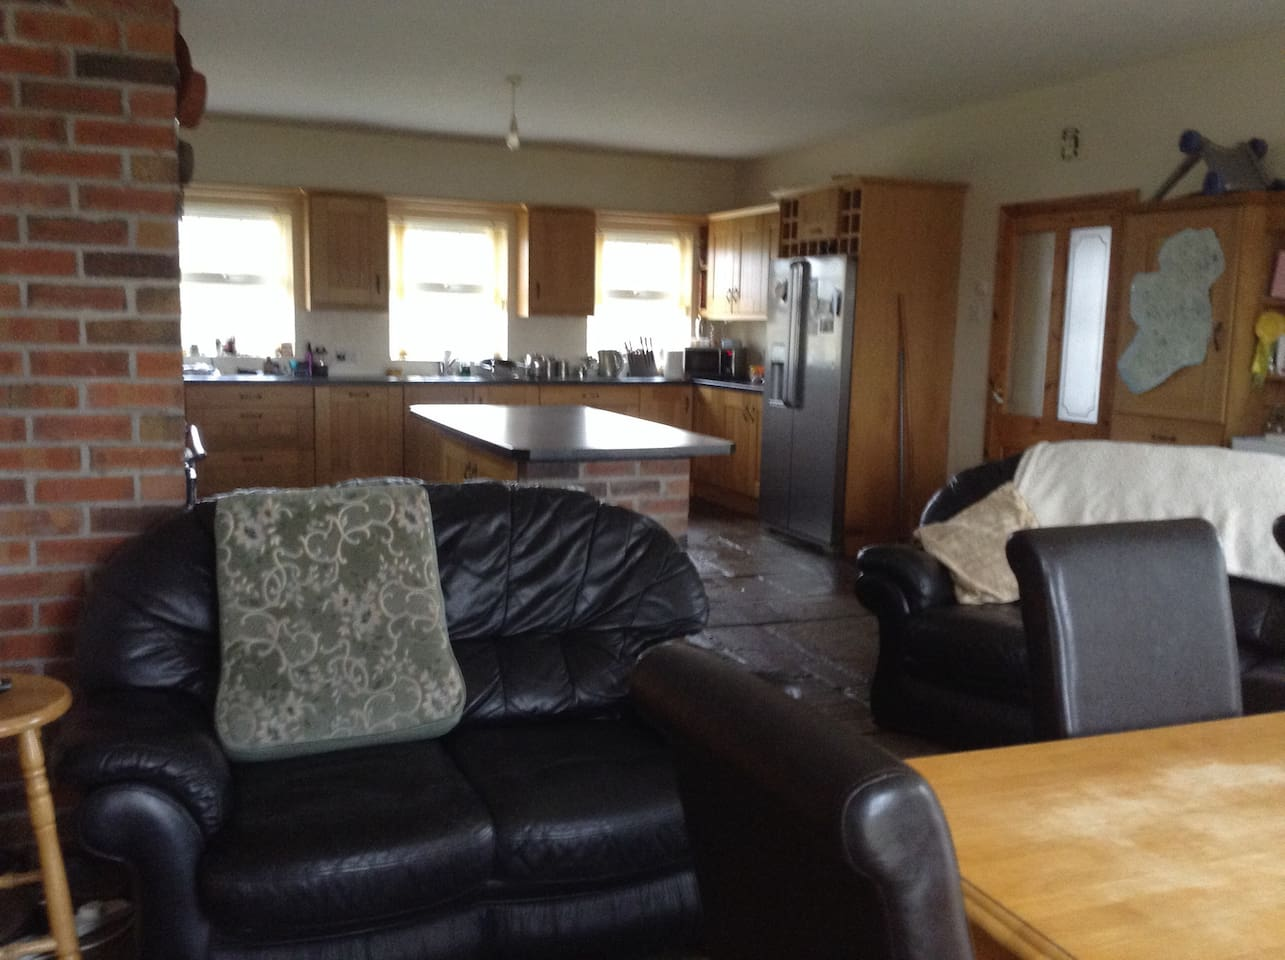 Fantastic kitchen with dining area and seating area. Personal Cutlery items available and basic kitchen facilities available.